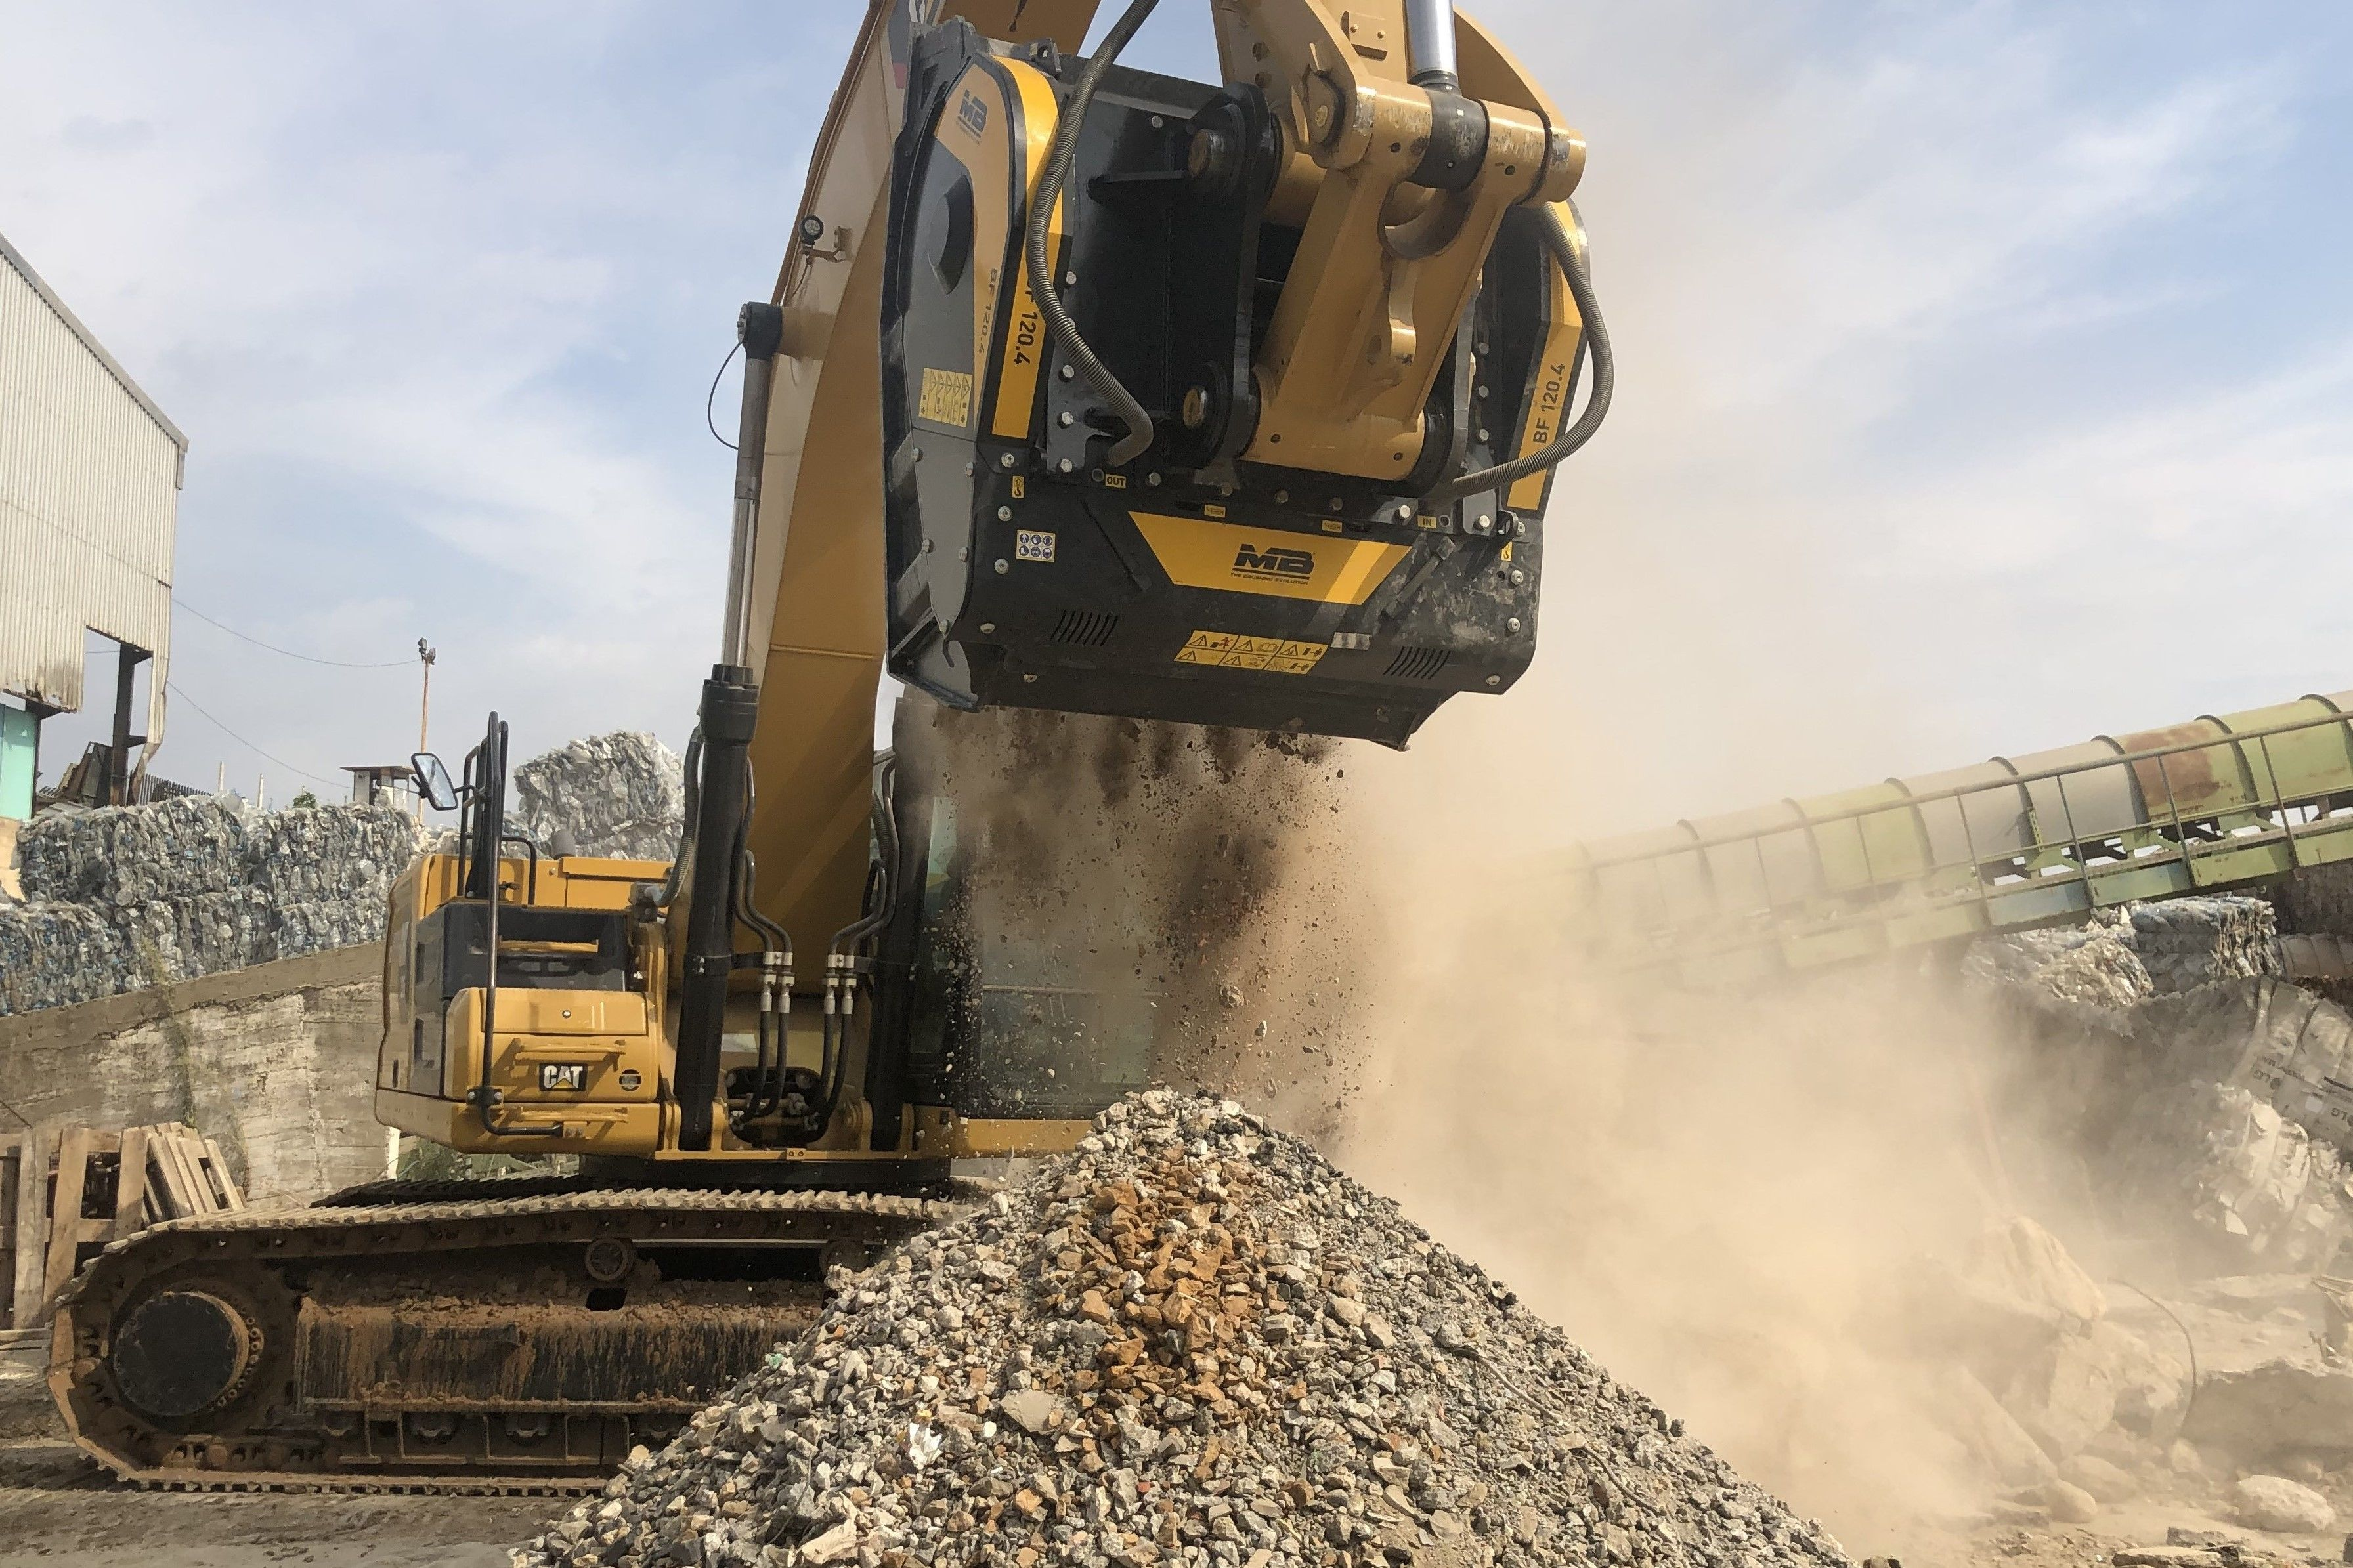 Crushing limestone boulders directly on site with the crusher bucket BF120.4 on a Caterpillar excavator